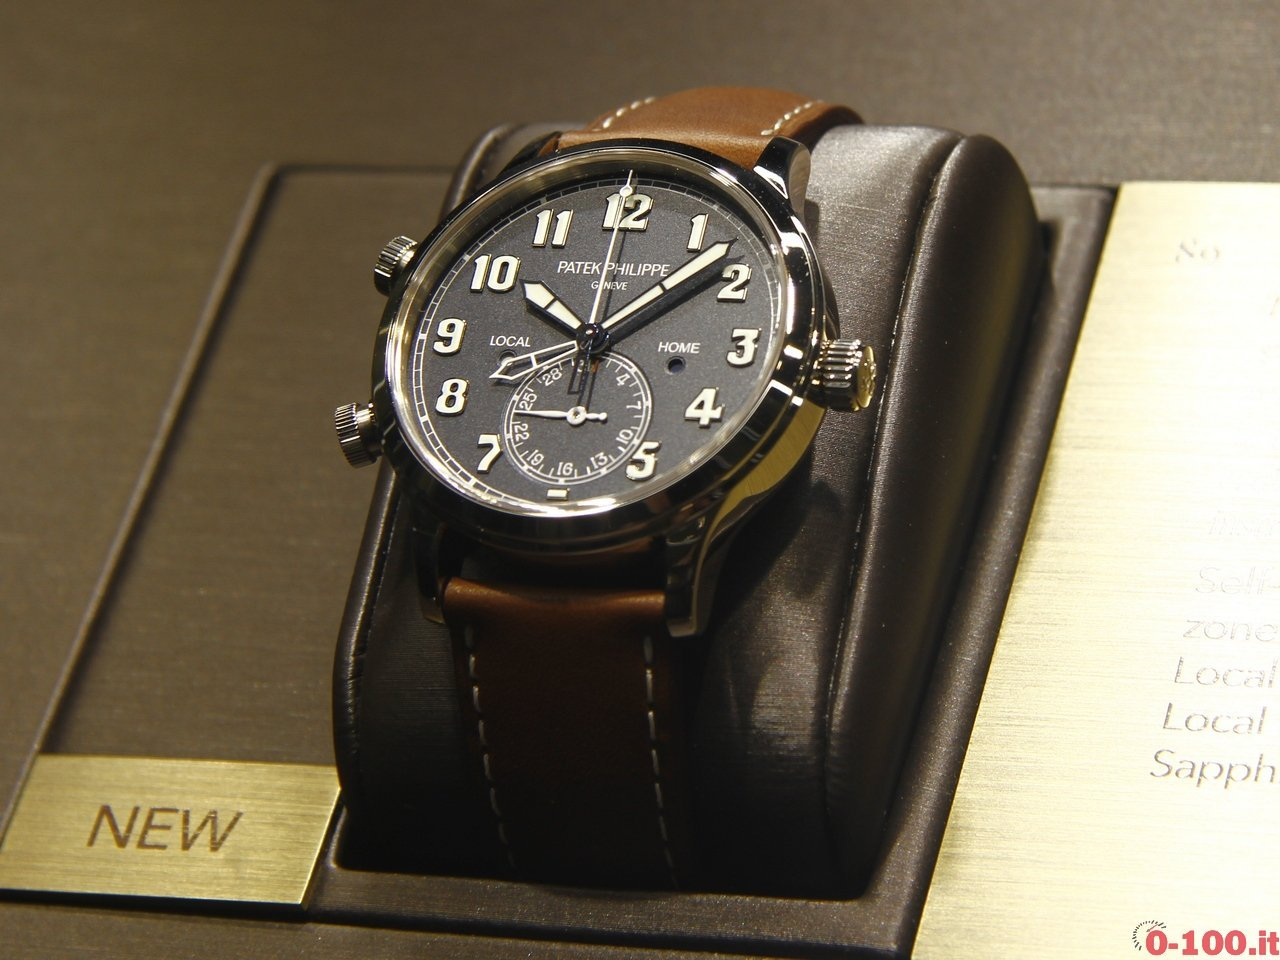 baselworld-2015-patek-philippe-calatrava-pilot-travel-time-0-100_0